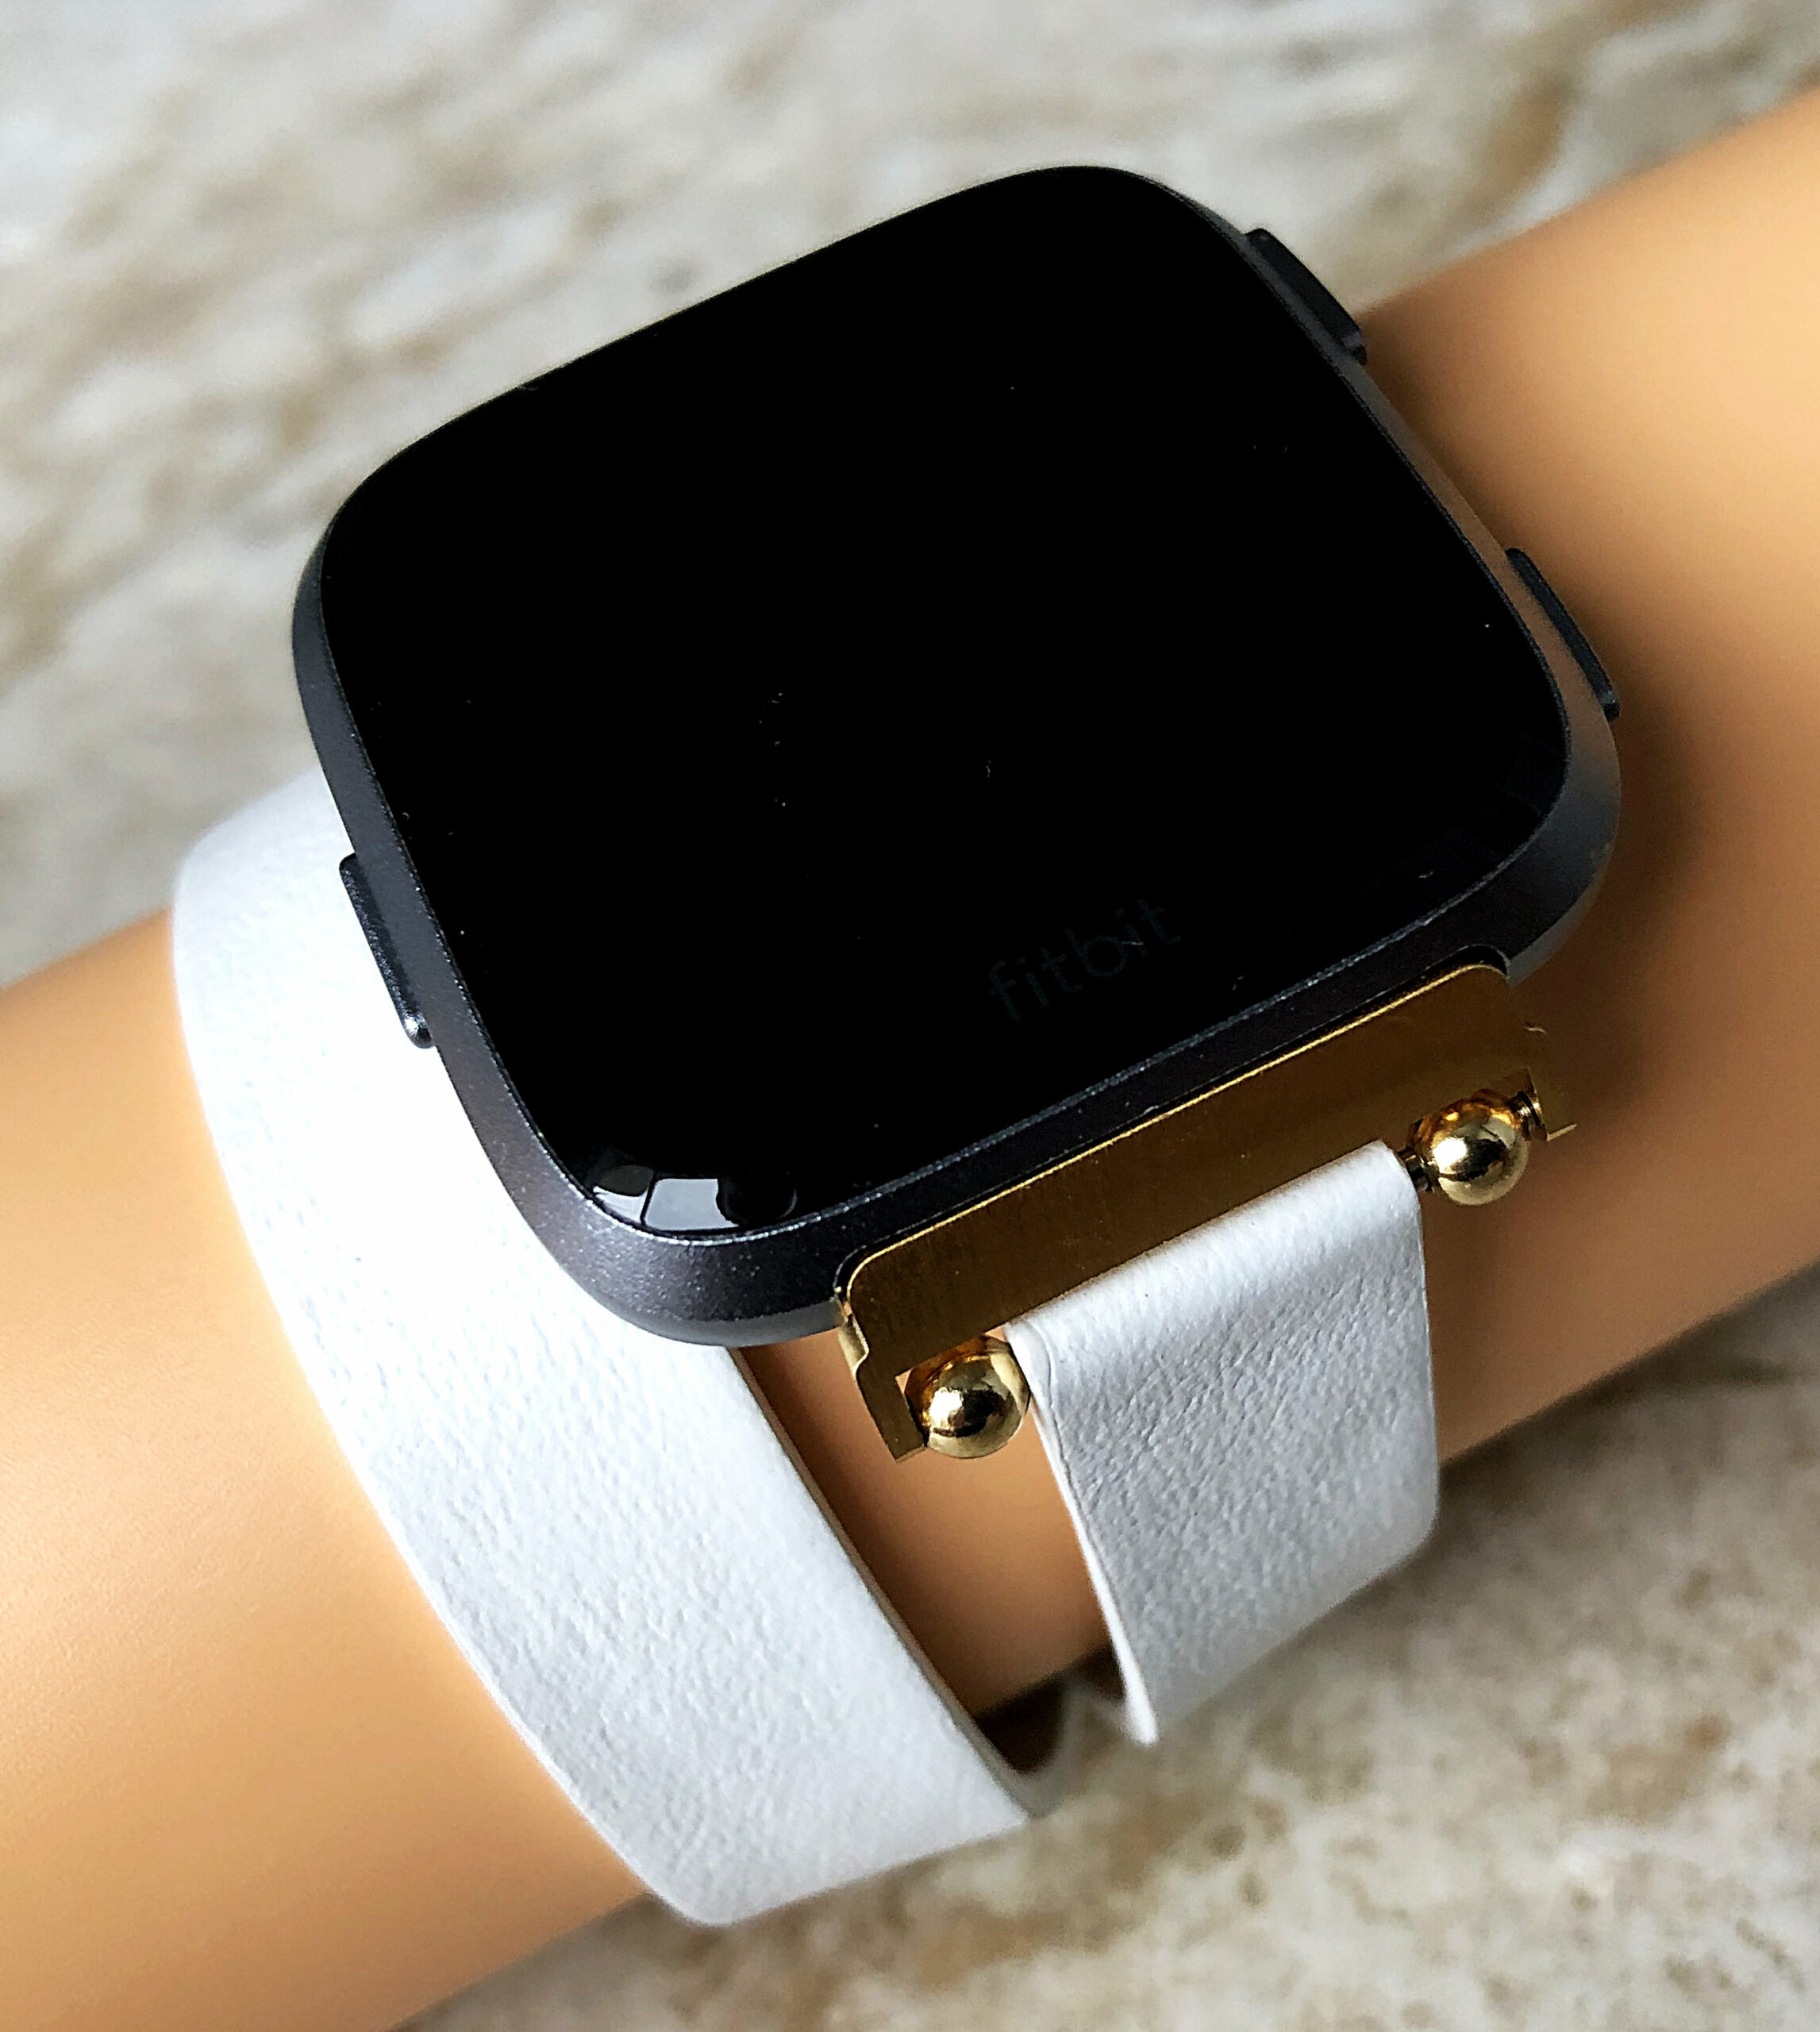 White Soft Band For Fitbit Versa 2 Double Wrap Around Wrist Eco Vegan Leather Watch Strap Twice Bracelet In Silver Rose Gold Black Finish Nickston All Rights Reserved